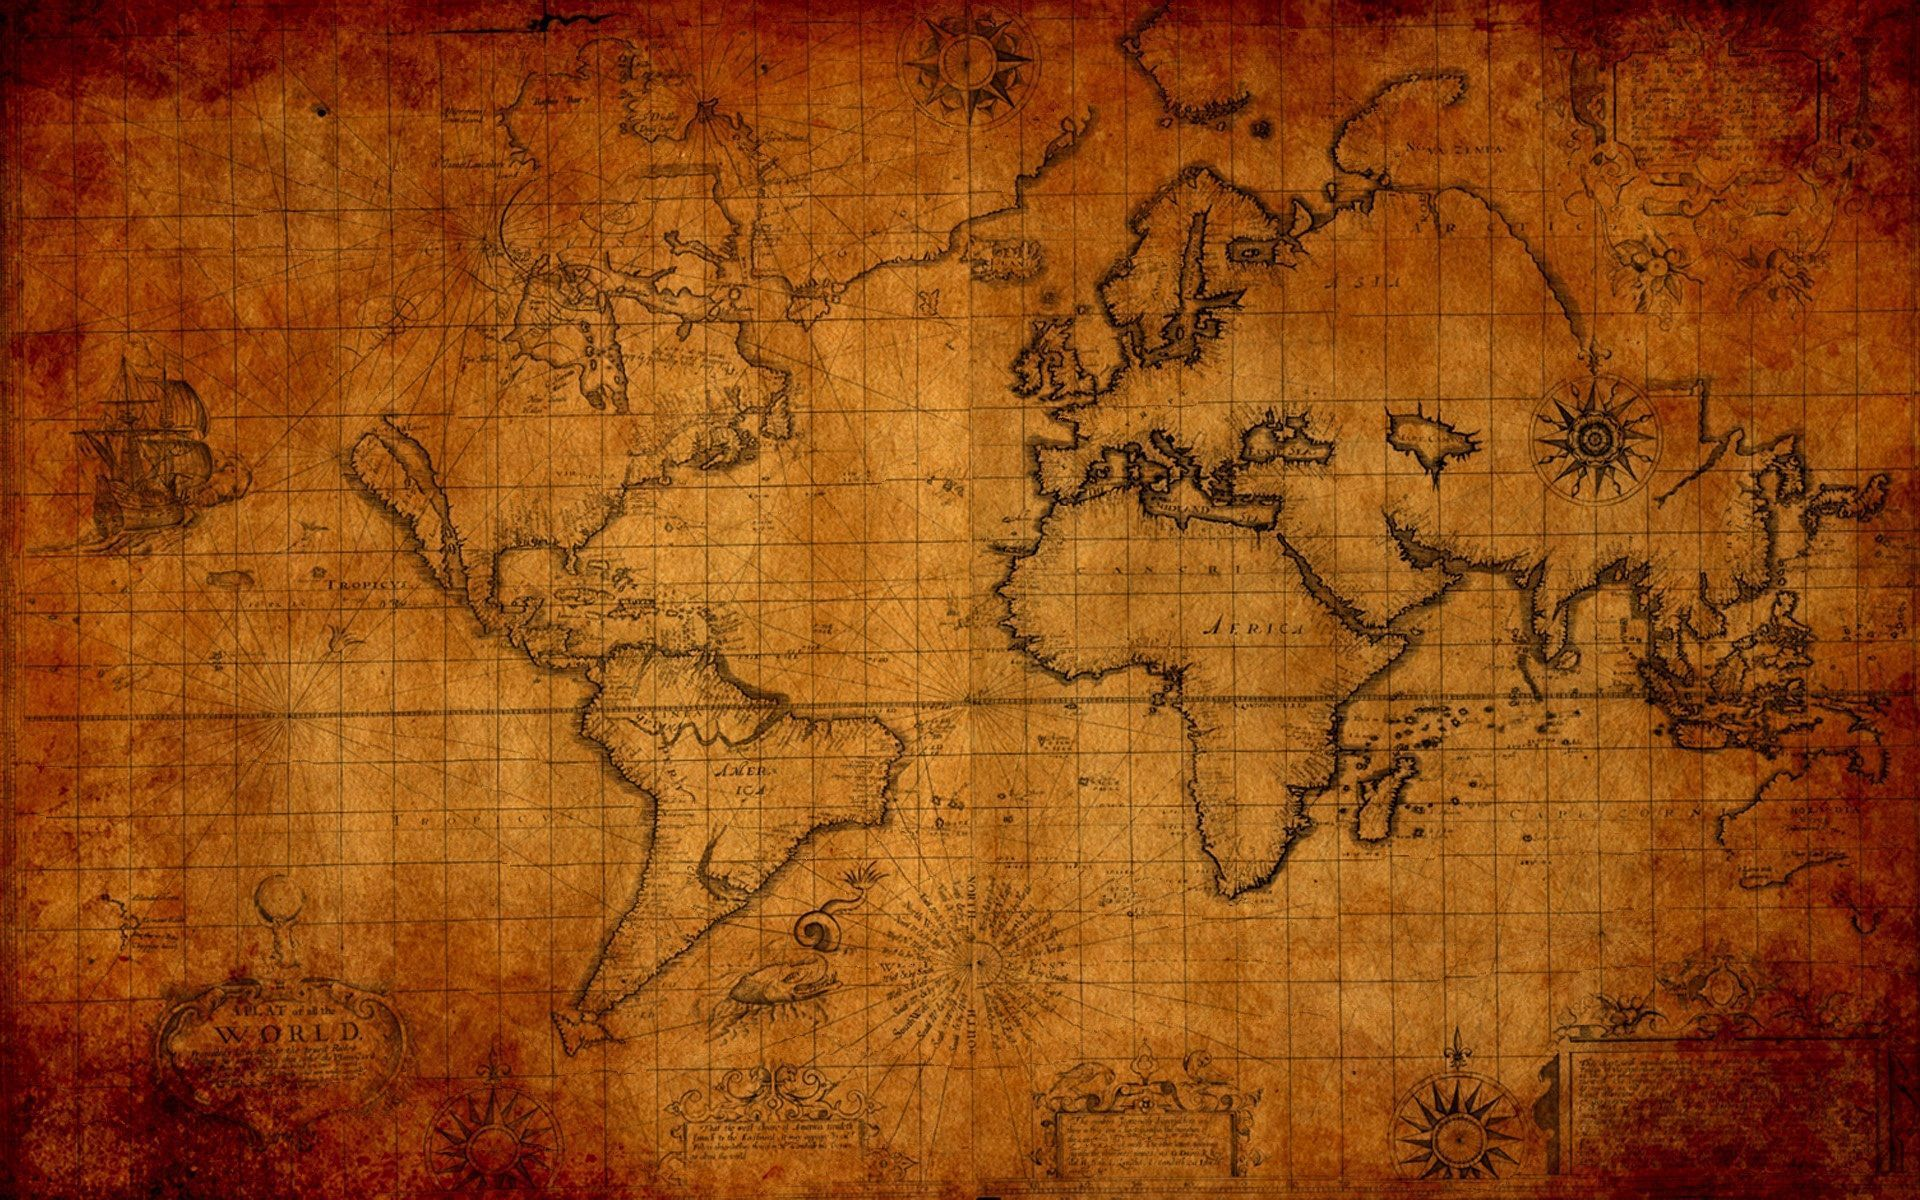 World Map Wallpaper world map wallpapers - full hd wallpaper search | maps | pinterest